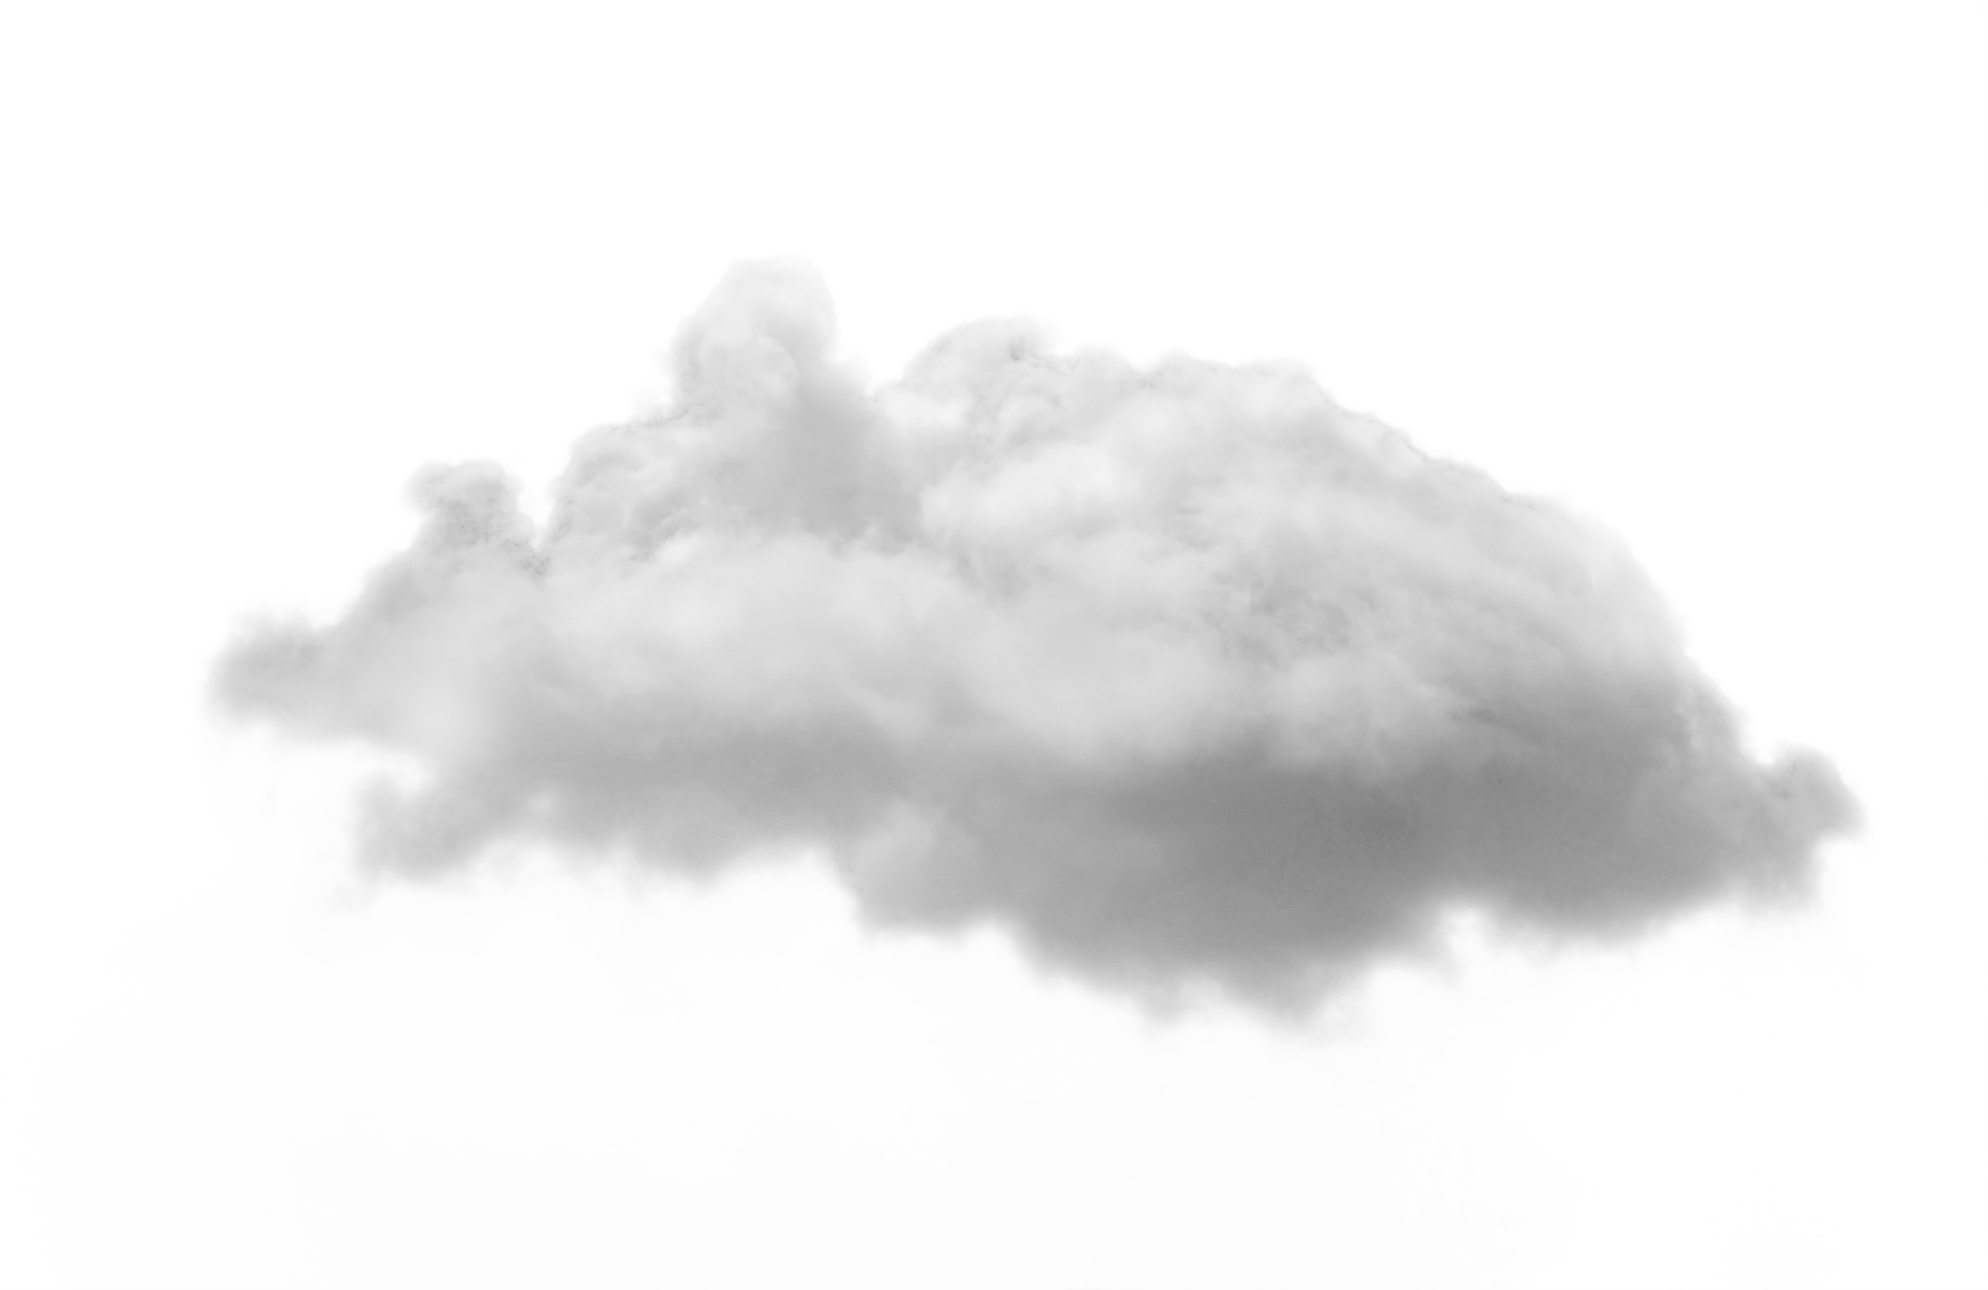 Black clouds png. Cloud image sb n